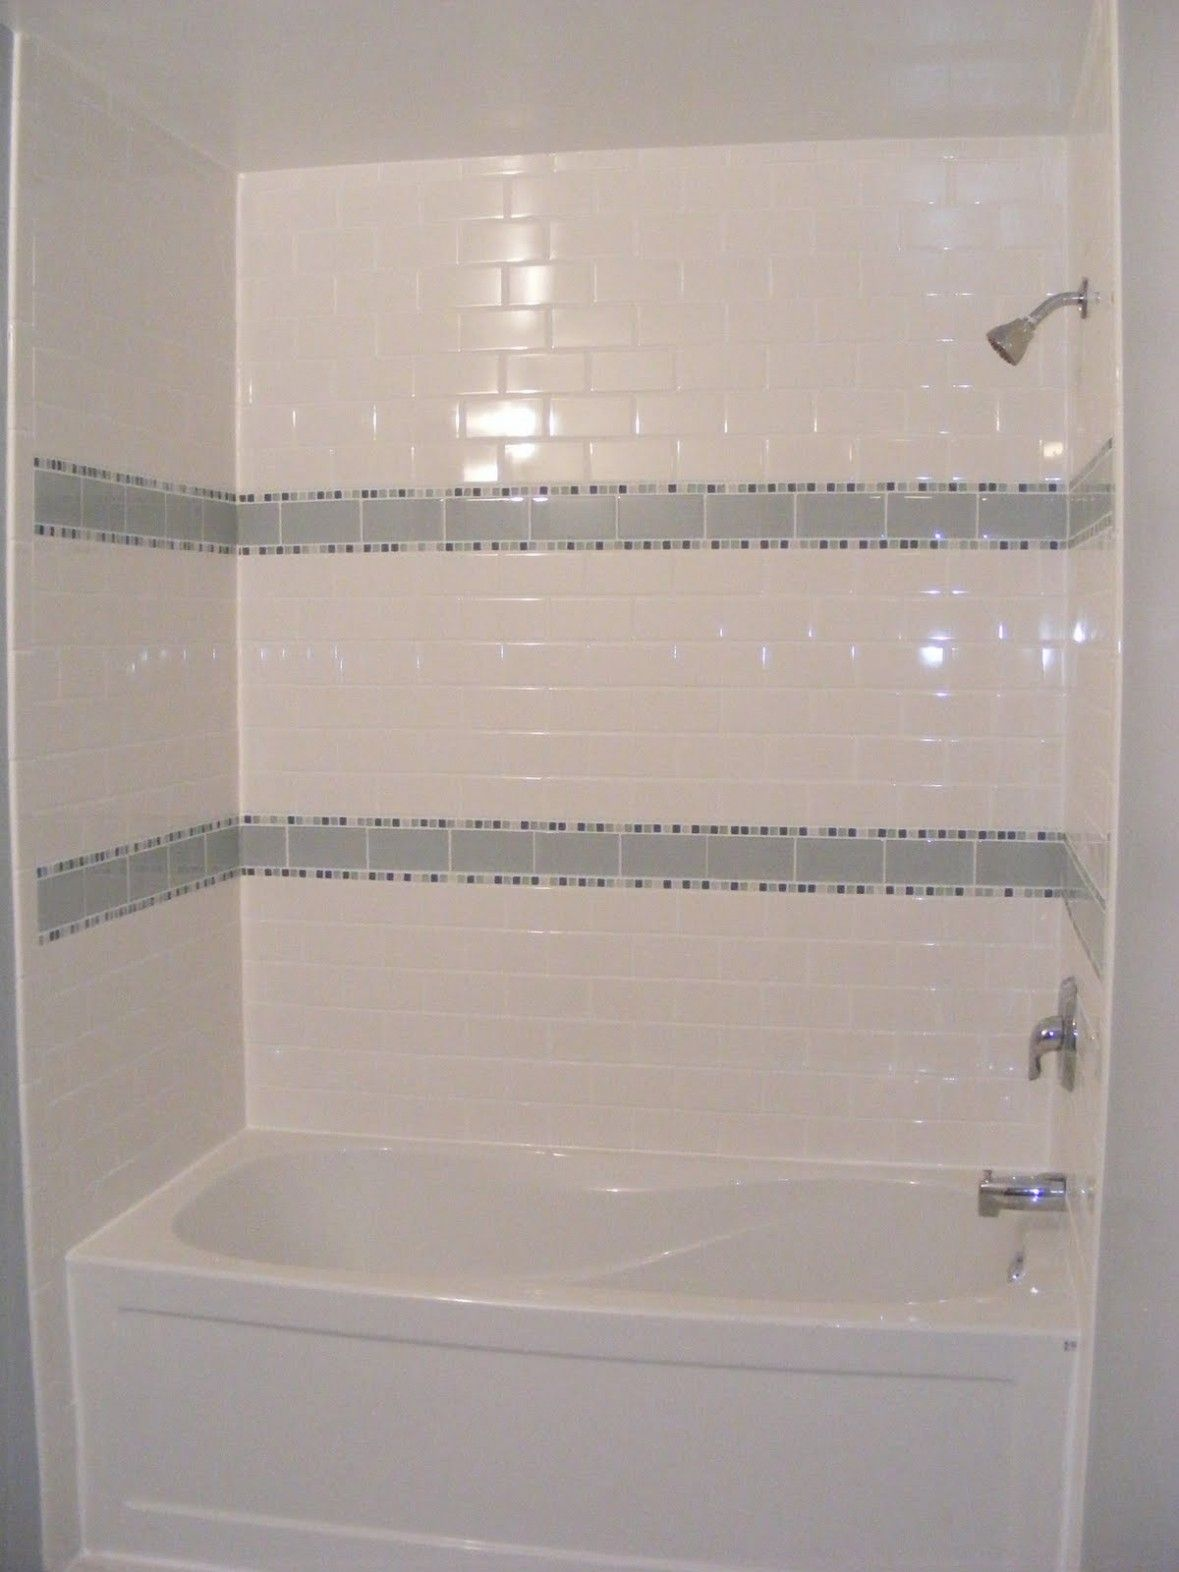 Bathroom amusing bath tile ideas beautiful gloss white tile bathroom amusing bath tile ideas beautiful gloss white tile bathroom wall subway shower bathtub with gray dailygadgetfo Images